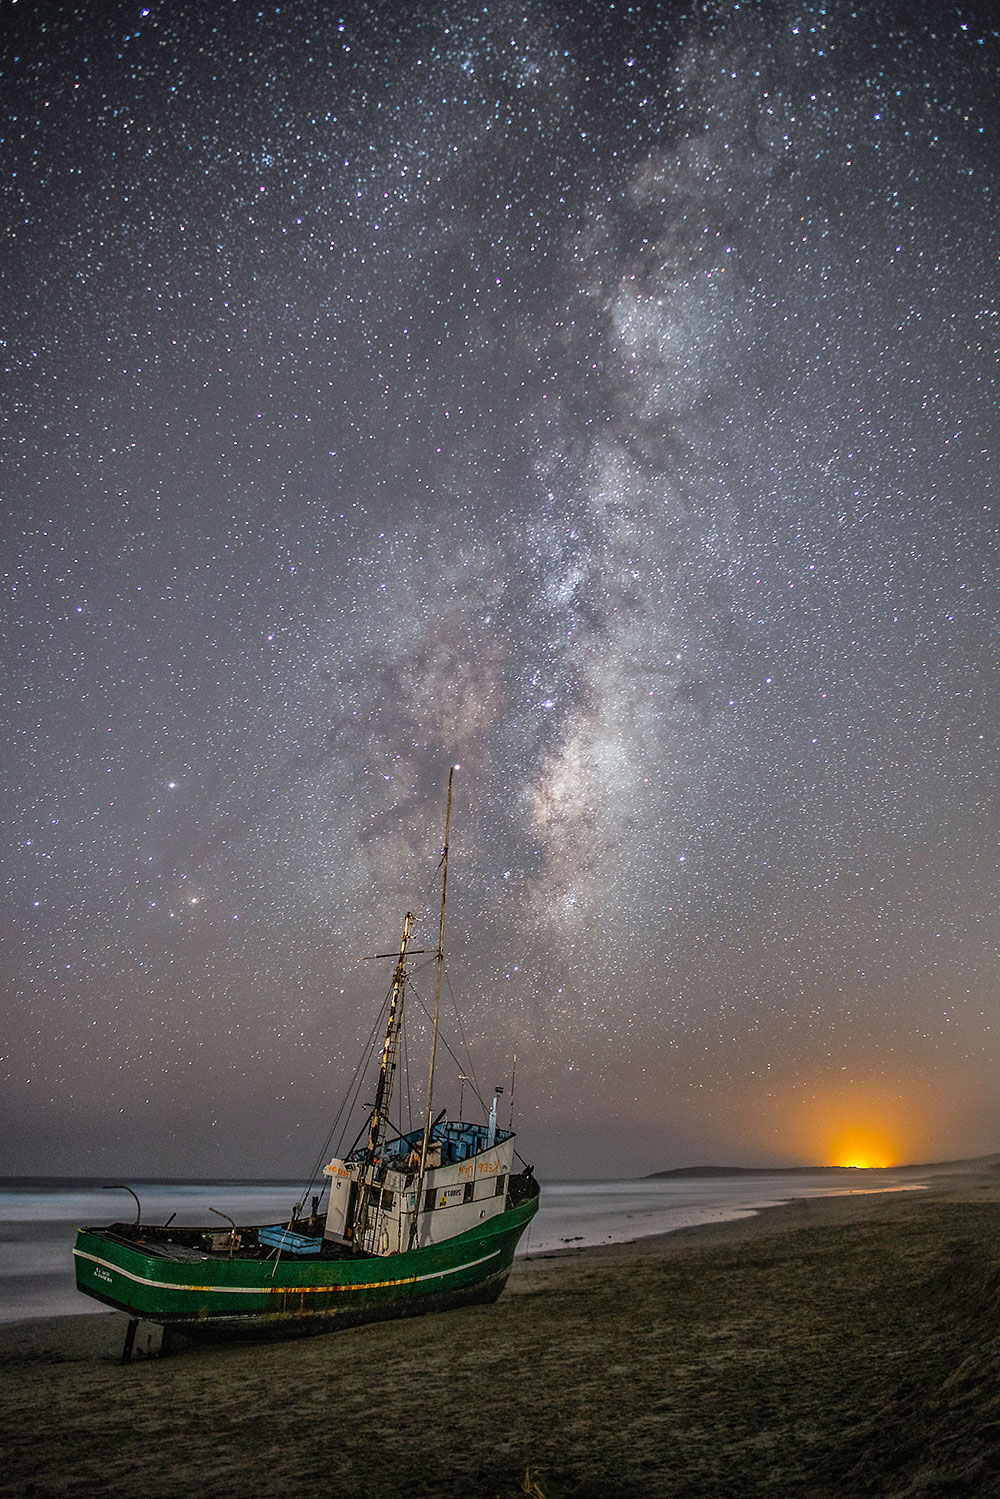 astrophotography_boat